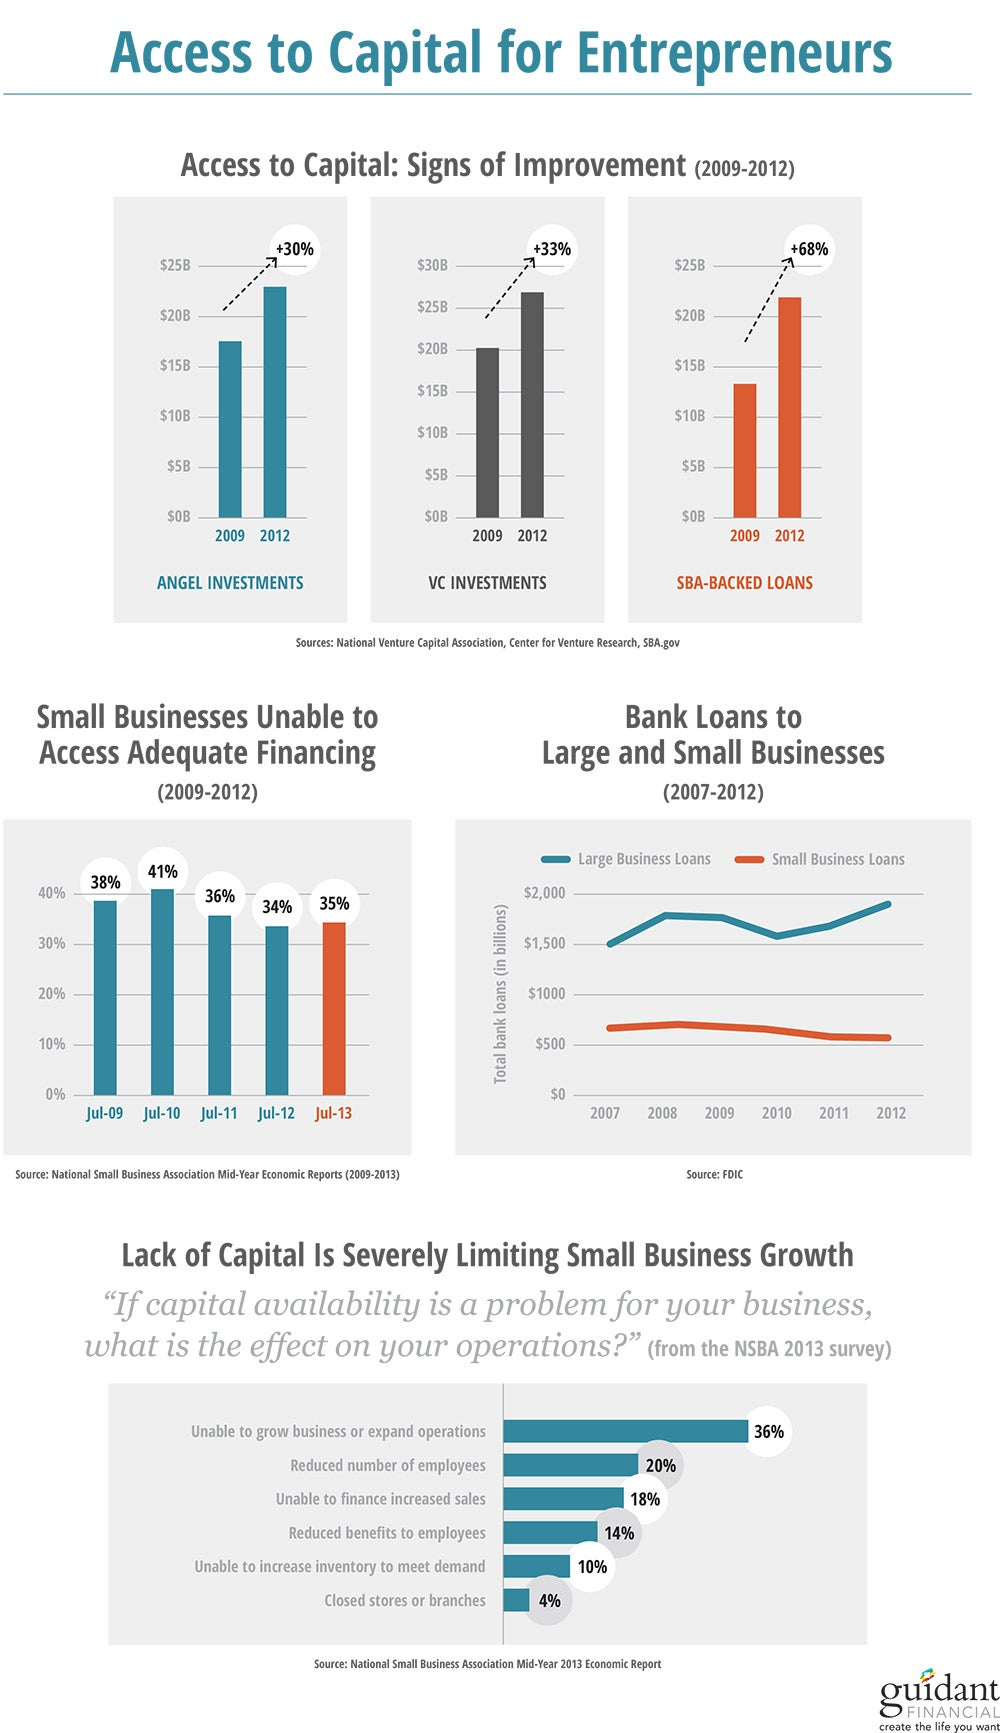 Has Access to Capital Really Improved for Entrepreneurs? (Infographic)